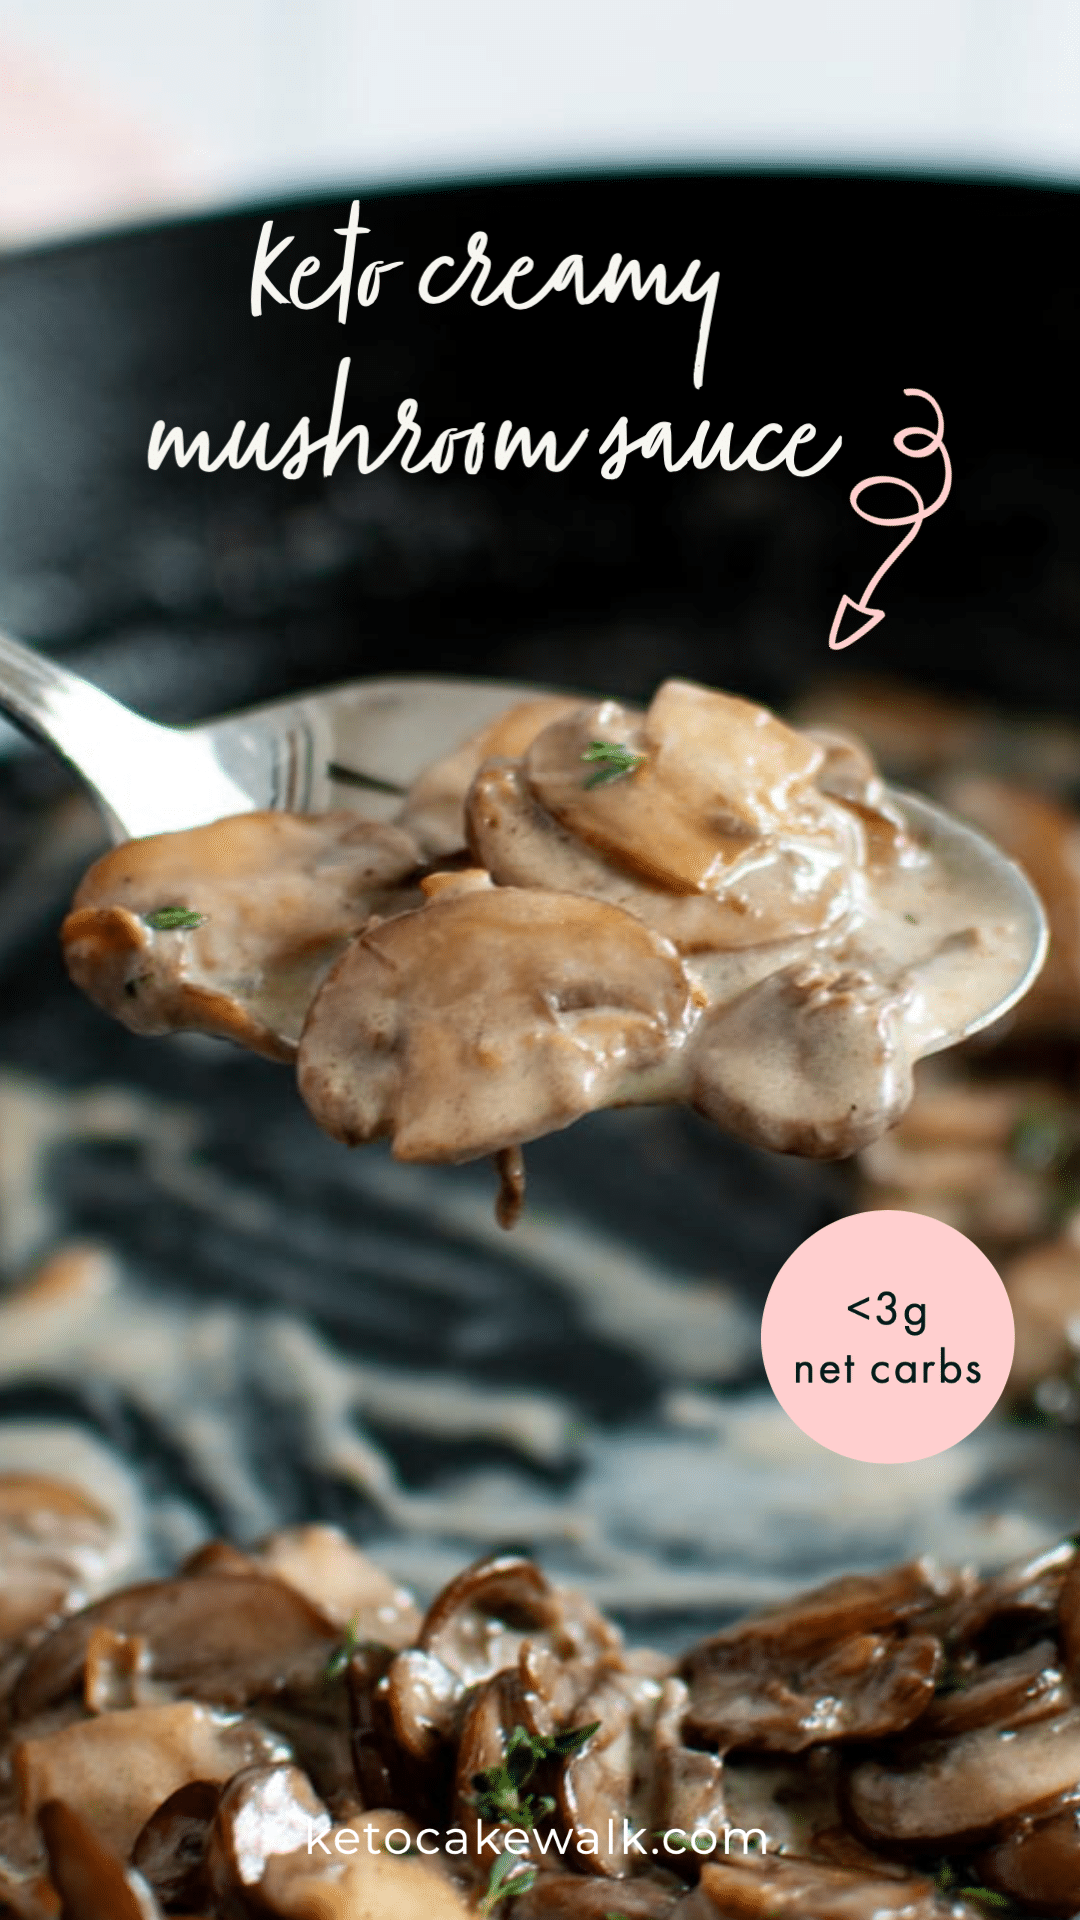 This creamy mushroom sauce comes together in 15 minutes and is a perfect low carb addition to steaks and burgers! #keto #lowcarb #glutenfree #grainfree #mushroom #sauce #steak #burgers #creamy